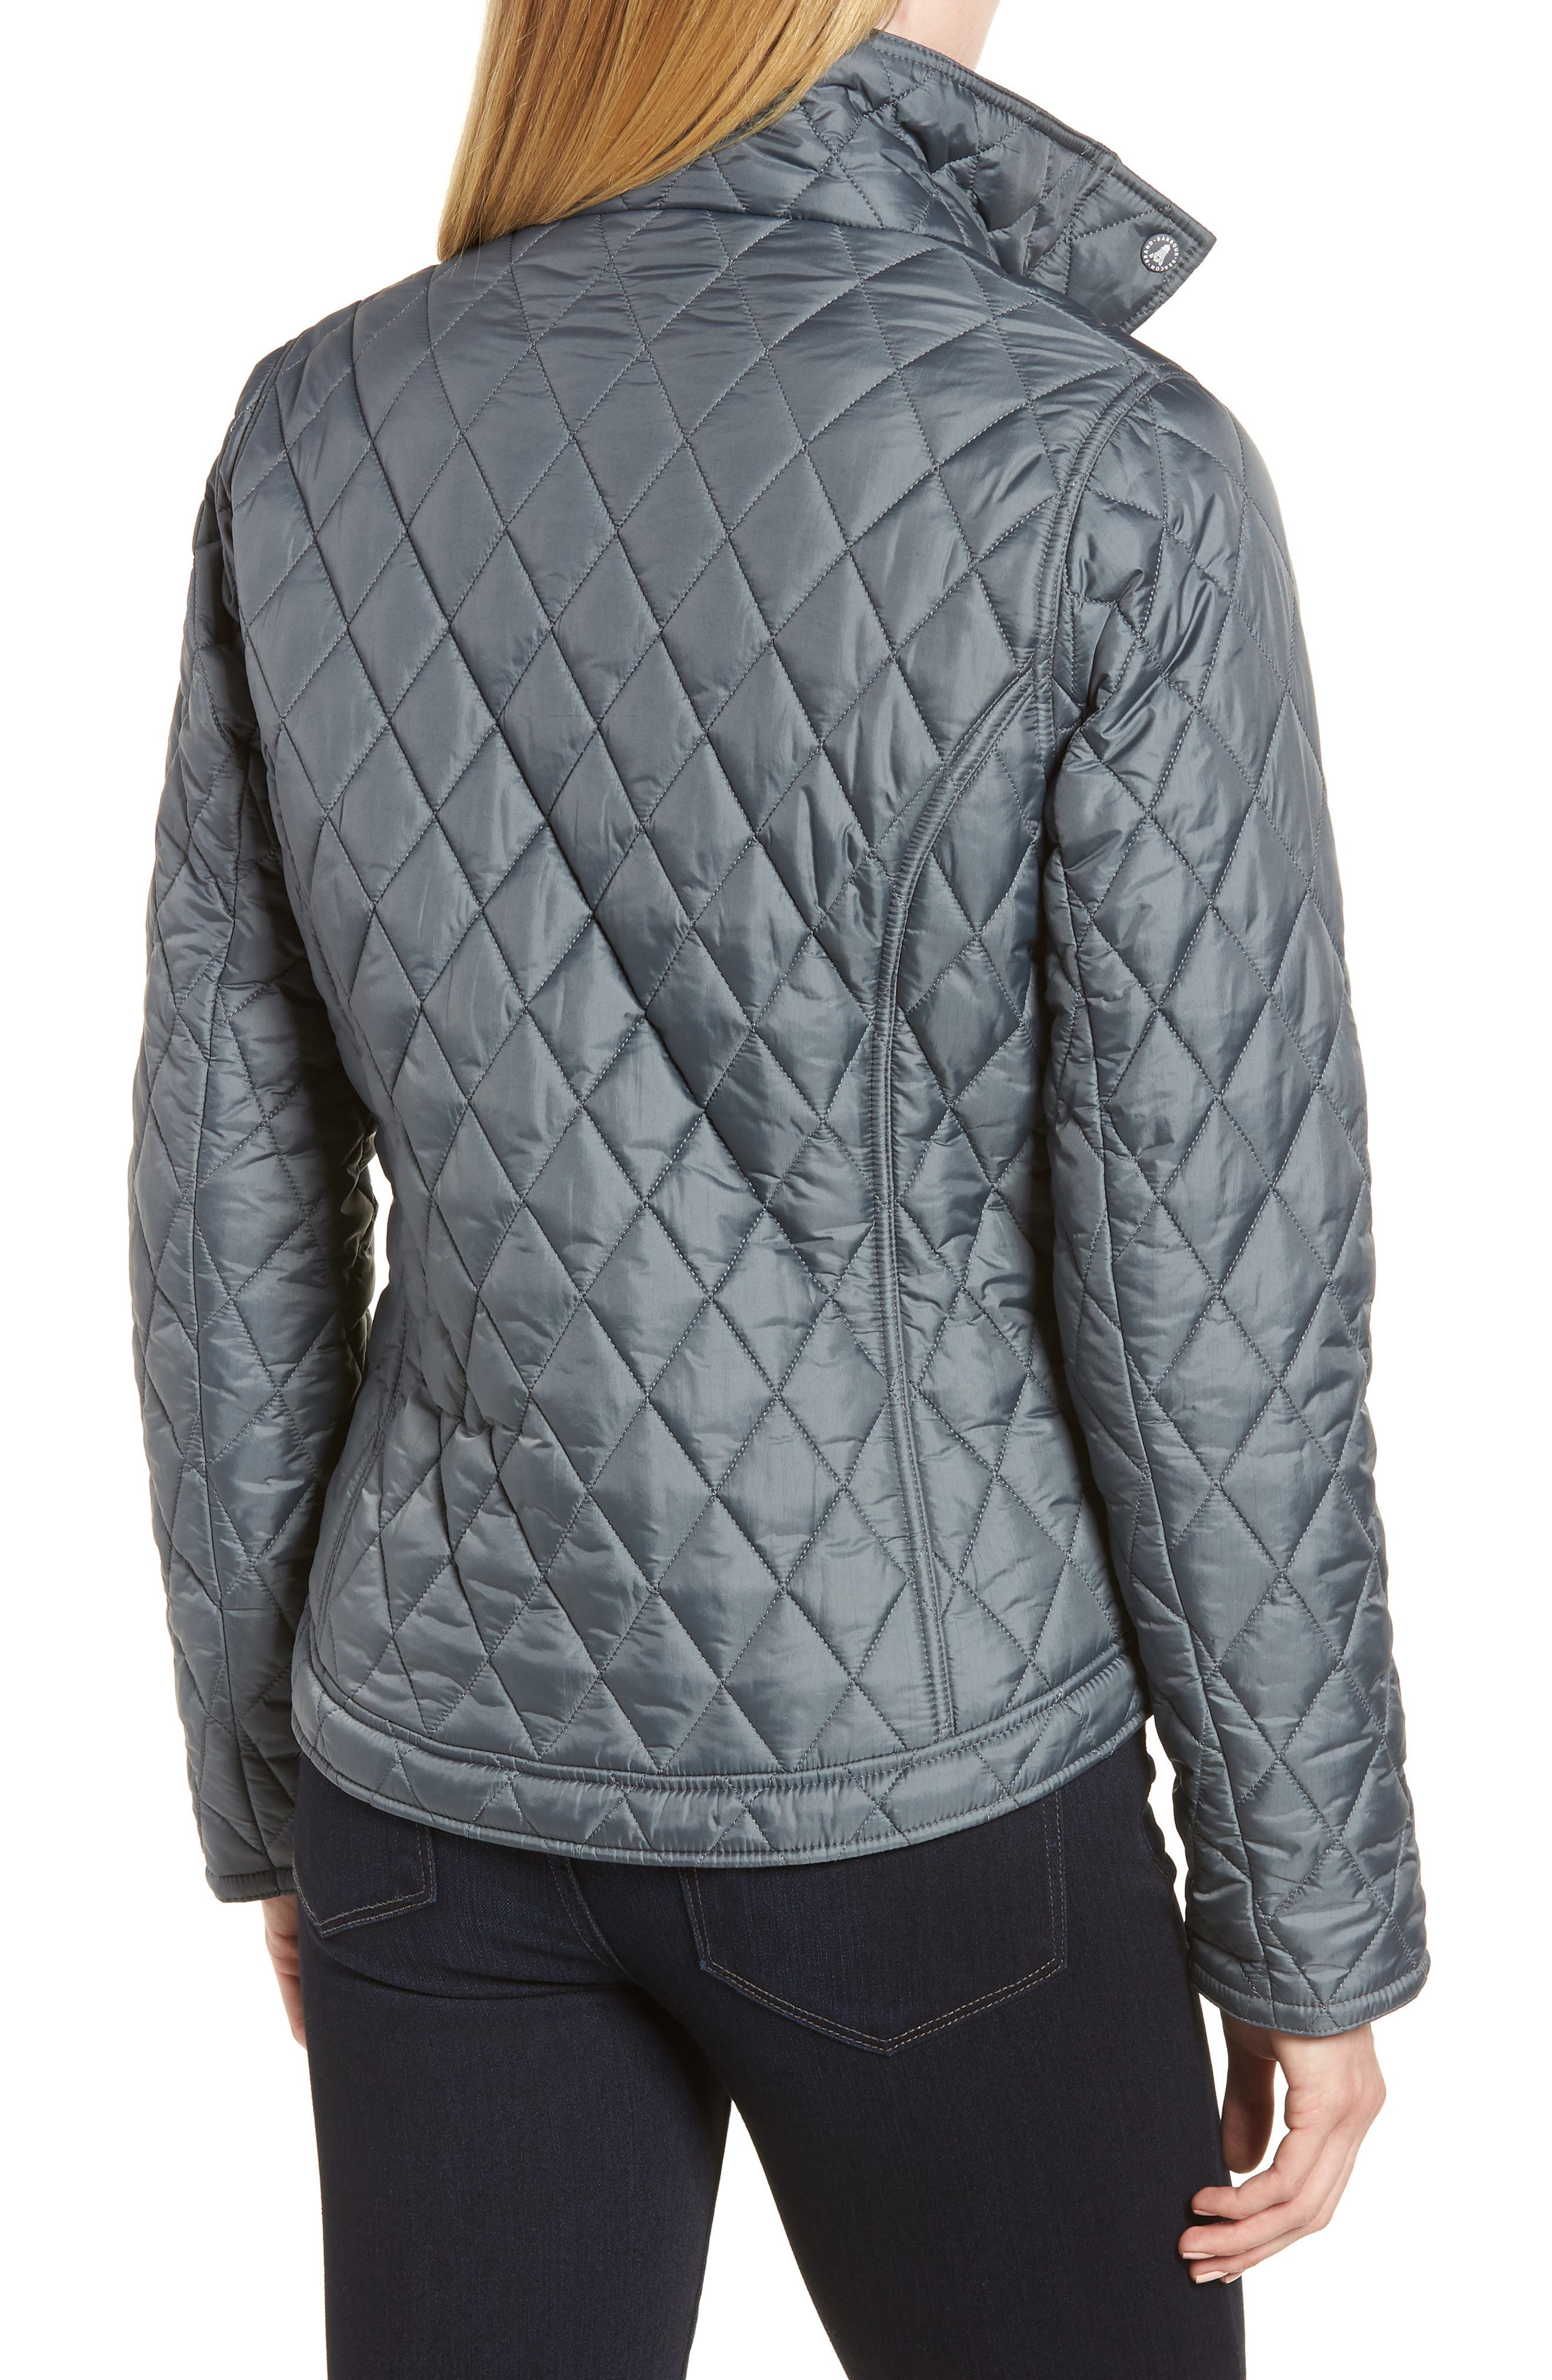 Fairway Quilted Jacket,                             Alternate thumbnail 2, color,                             Washed Charcoal